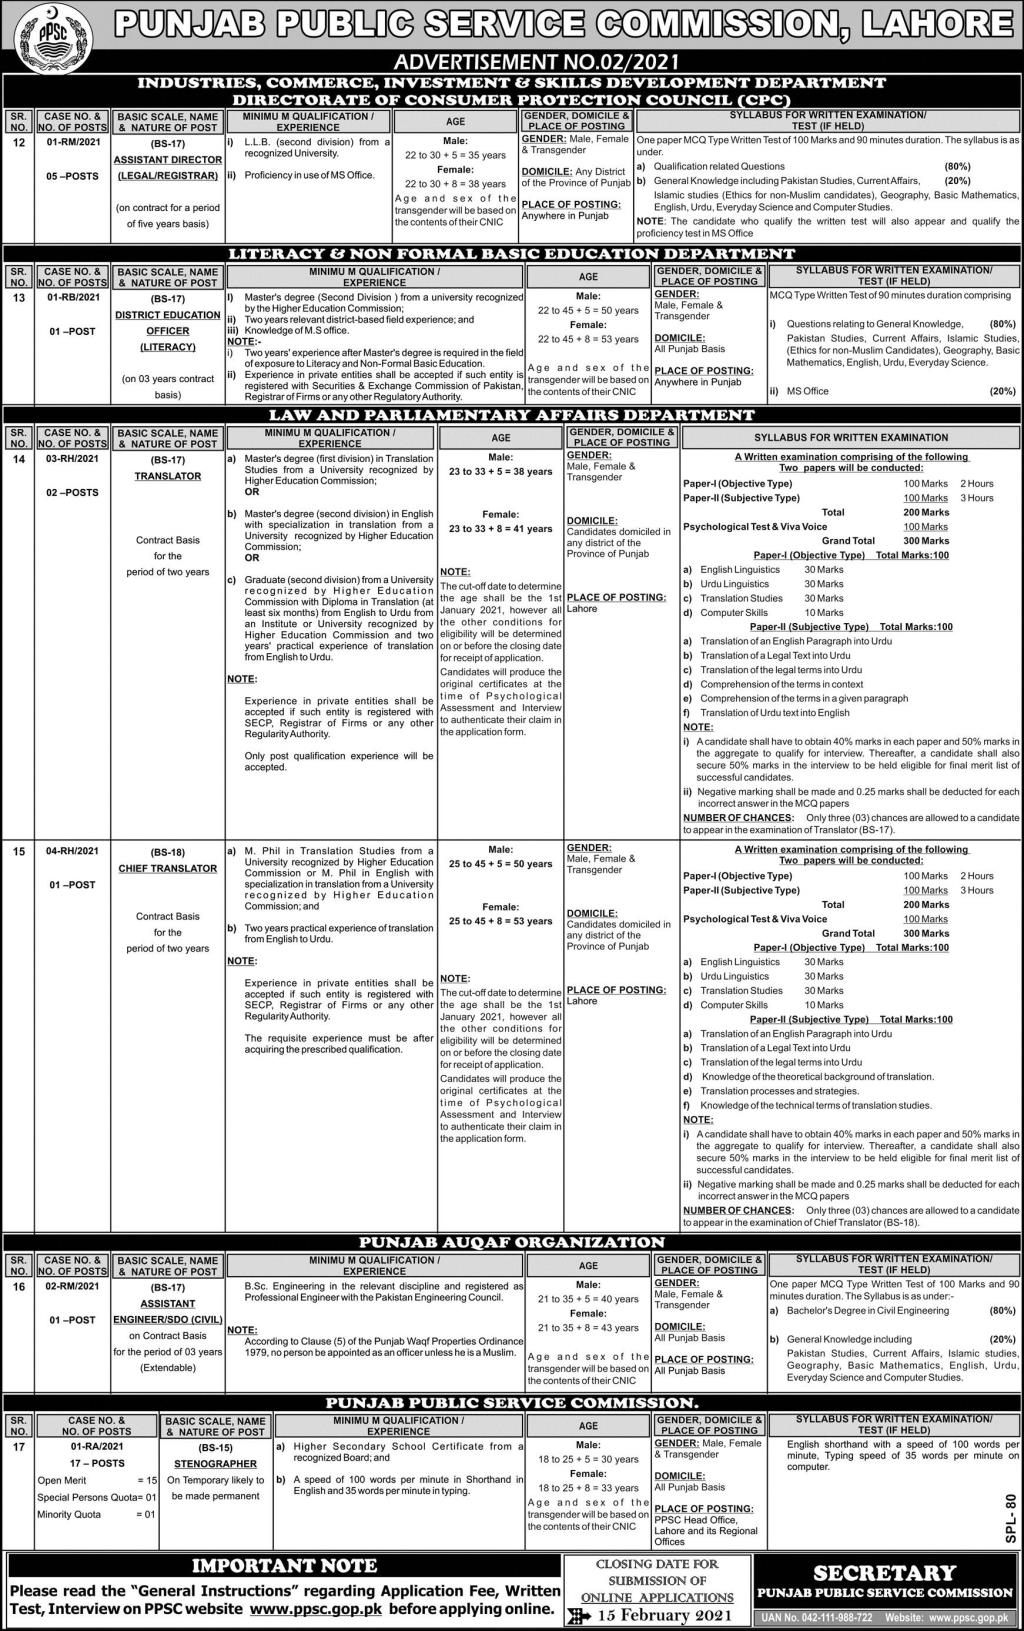 PPSC Jobs 2021 - Punjab Public Service Commission Jobs 2021 - PPSC Job Pk - PBSC Jobs - PPSC Jobs in Pakistan - How to Apply PPSC Jobs 2021 - PPSC Latest Jobs